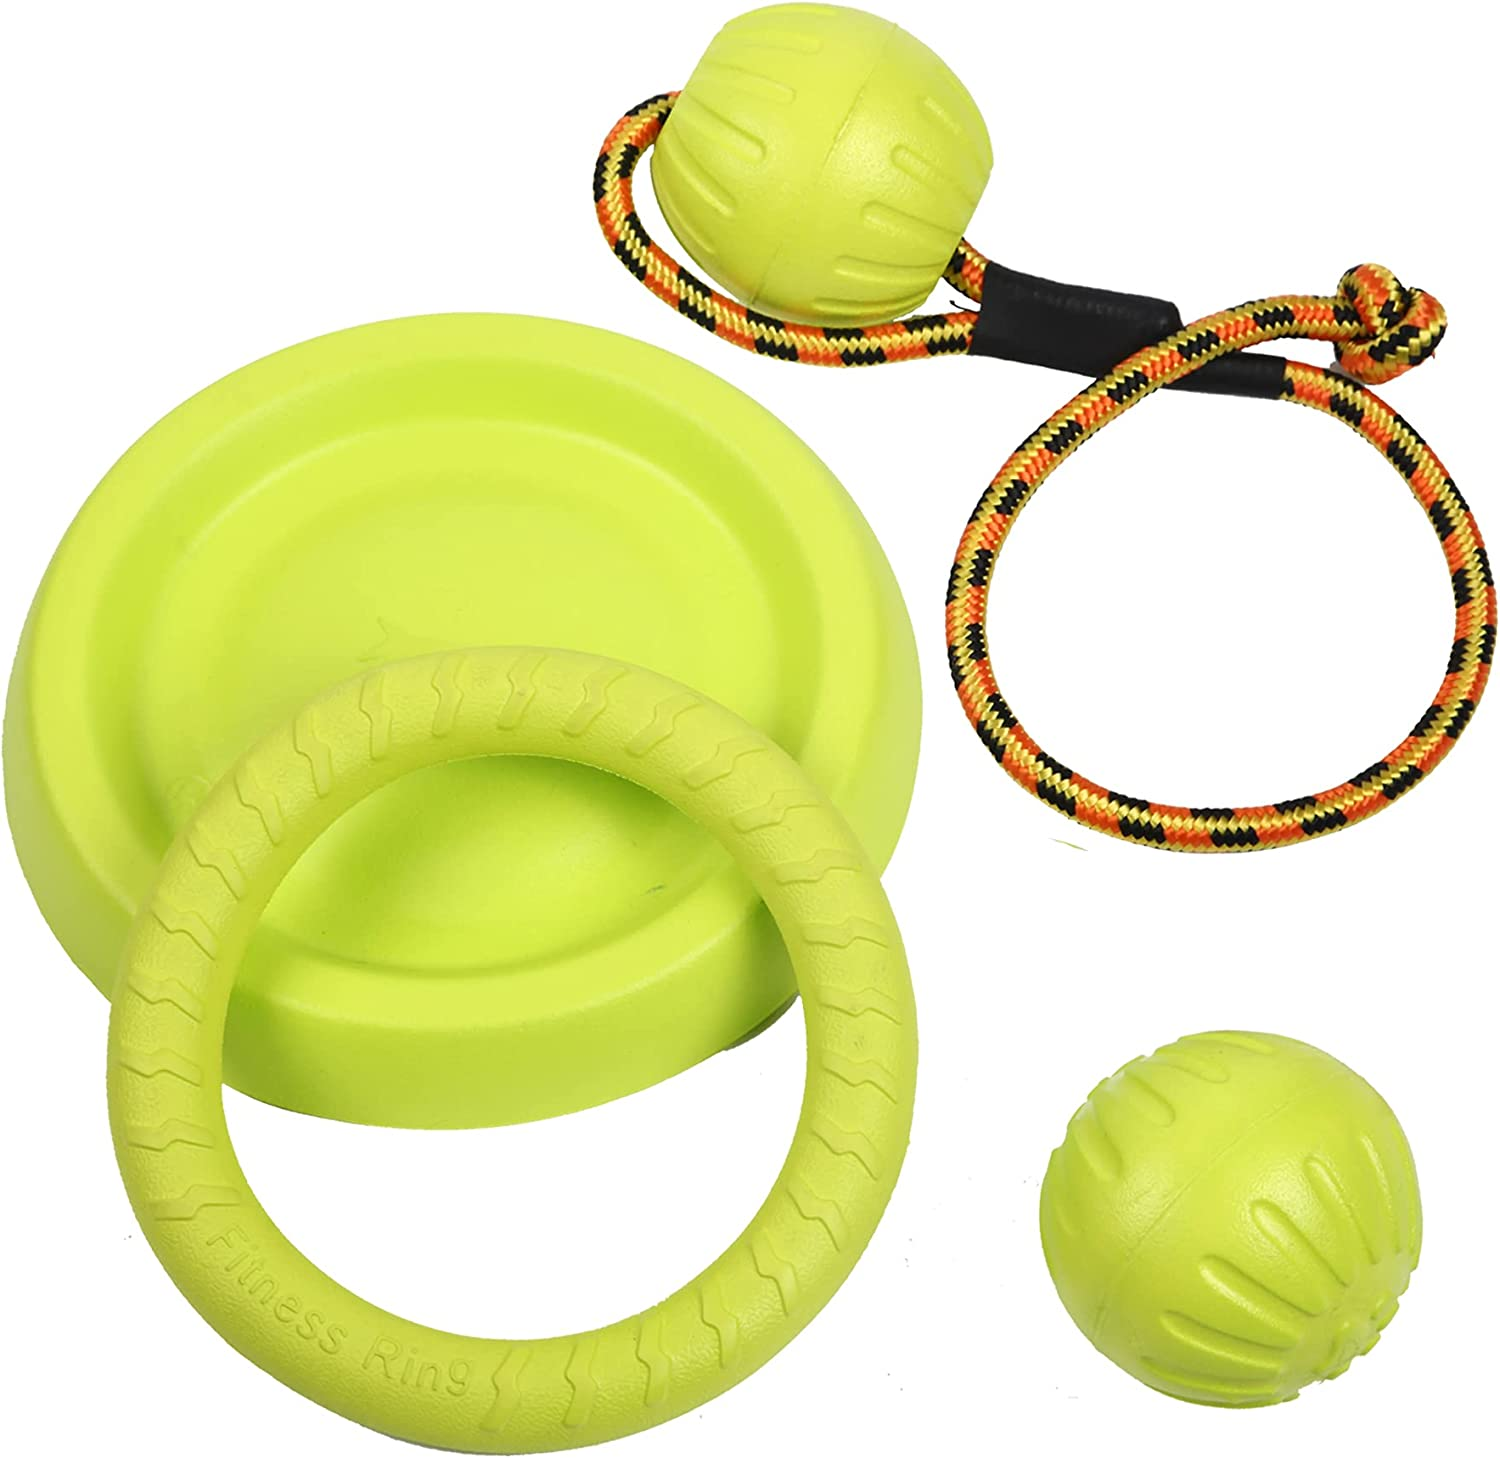 Dog Flying Discs Ring Toy Ball Rope on a Outlet ☆ Free Directly managed store Shipping for Wate